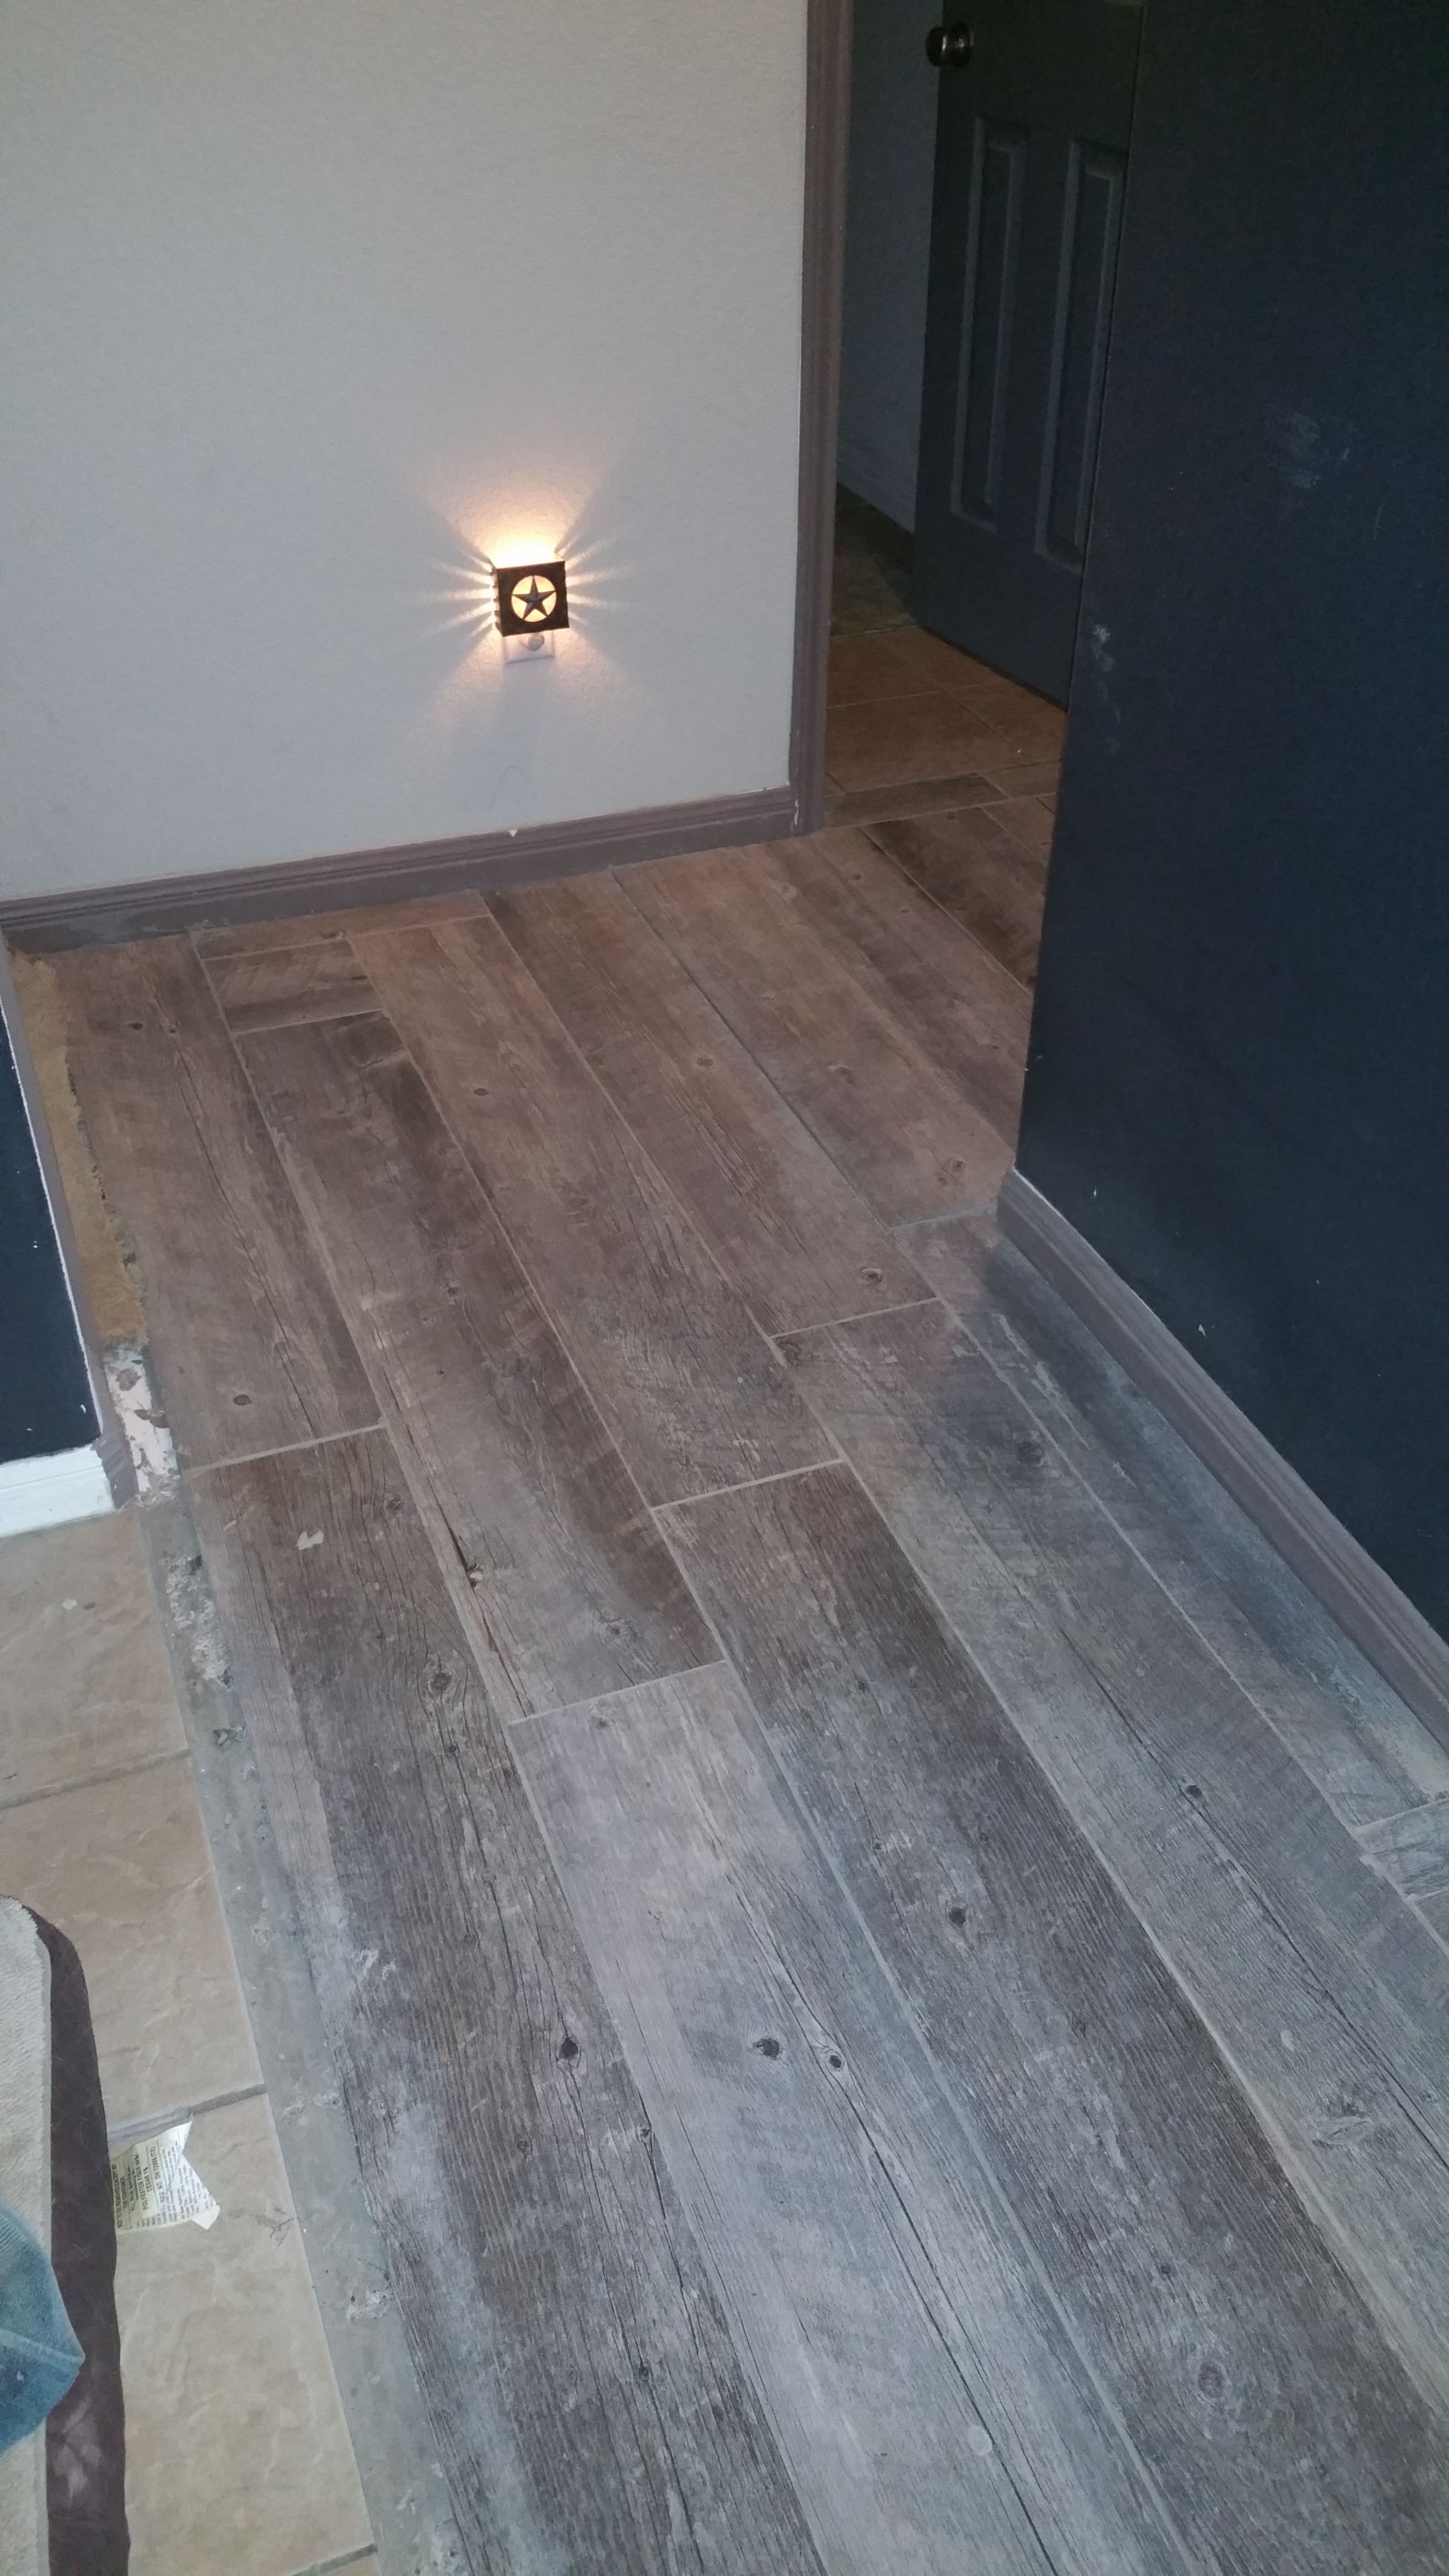 New Floors Made By Natural Timber Ash Purchased From Lowes Home